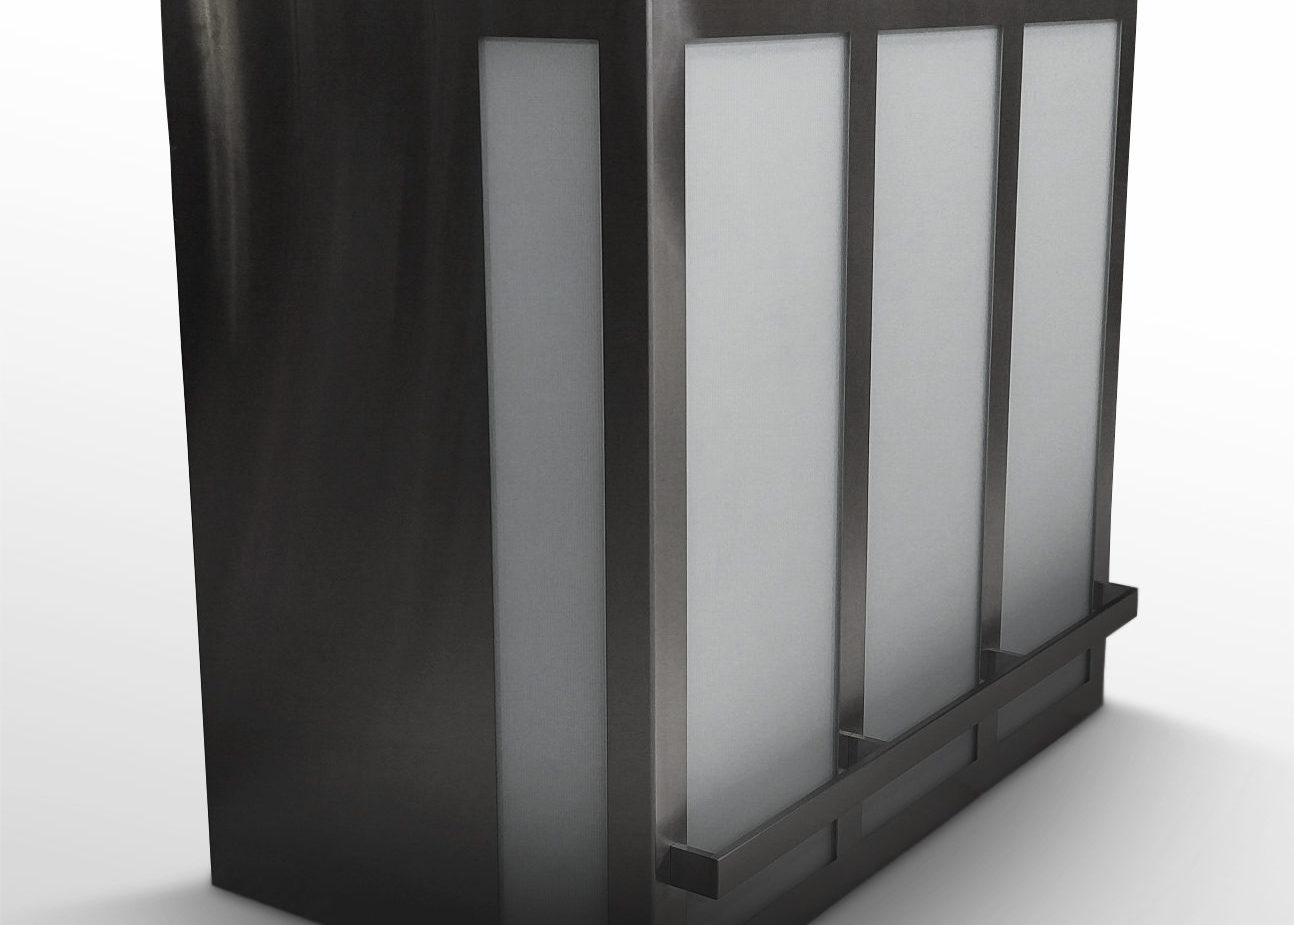 Wall mounted Cosmopolitan in brushed stainless and glass panels.